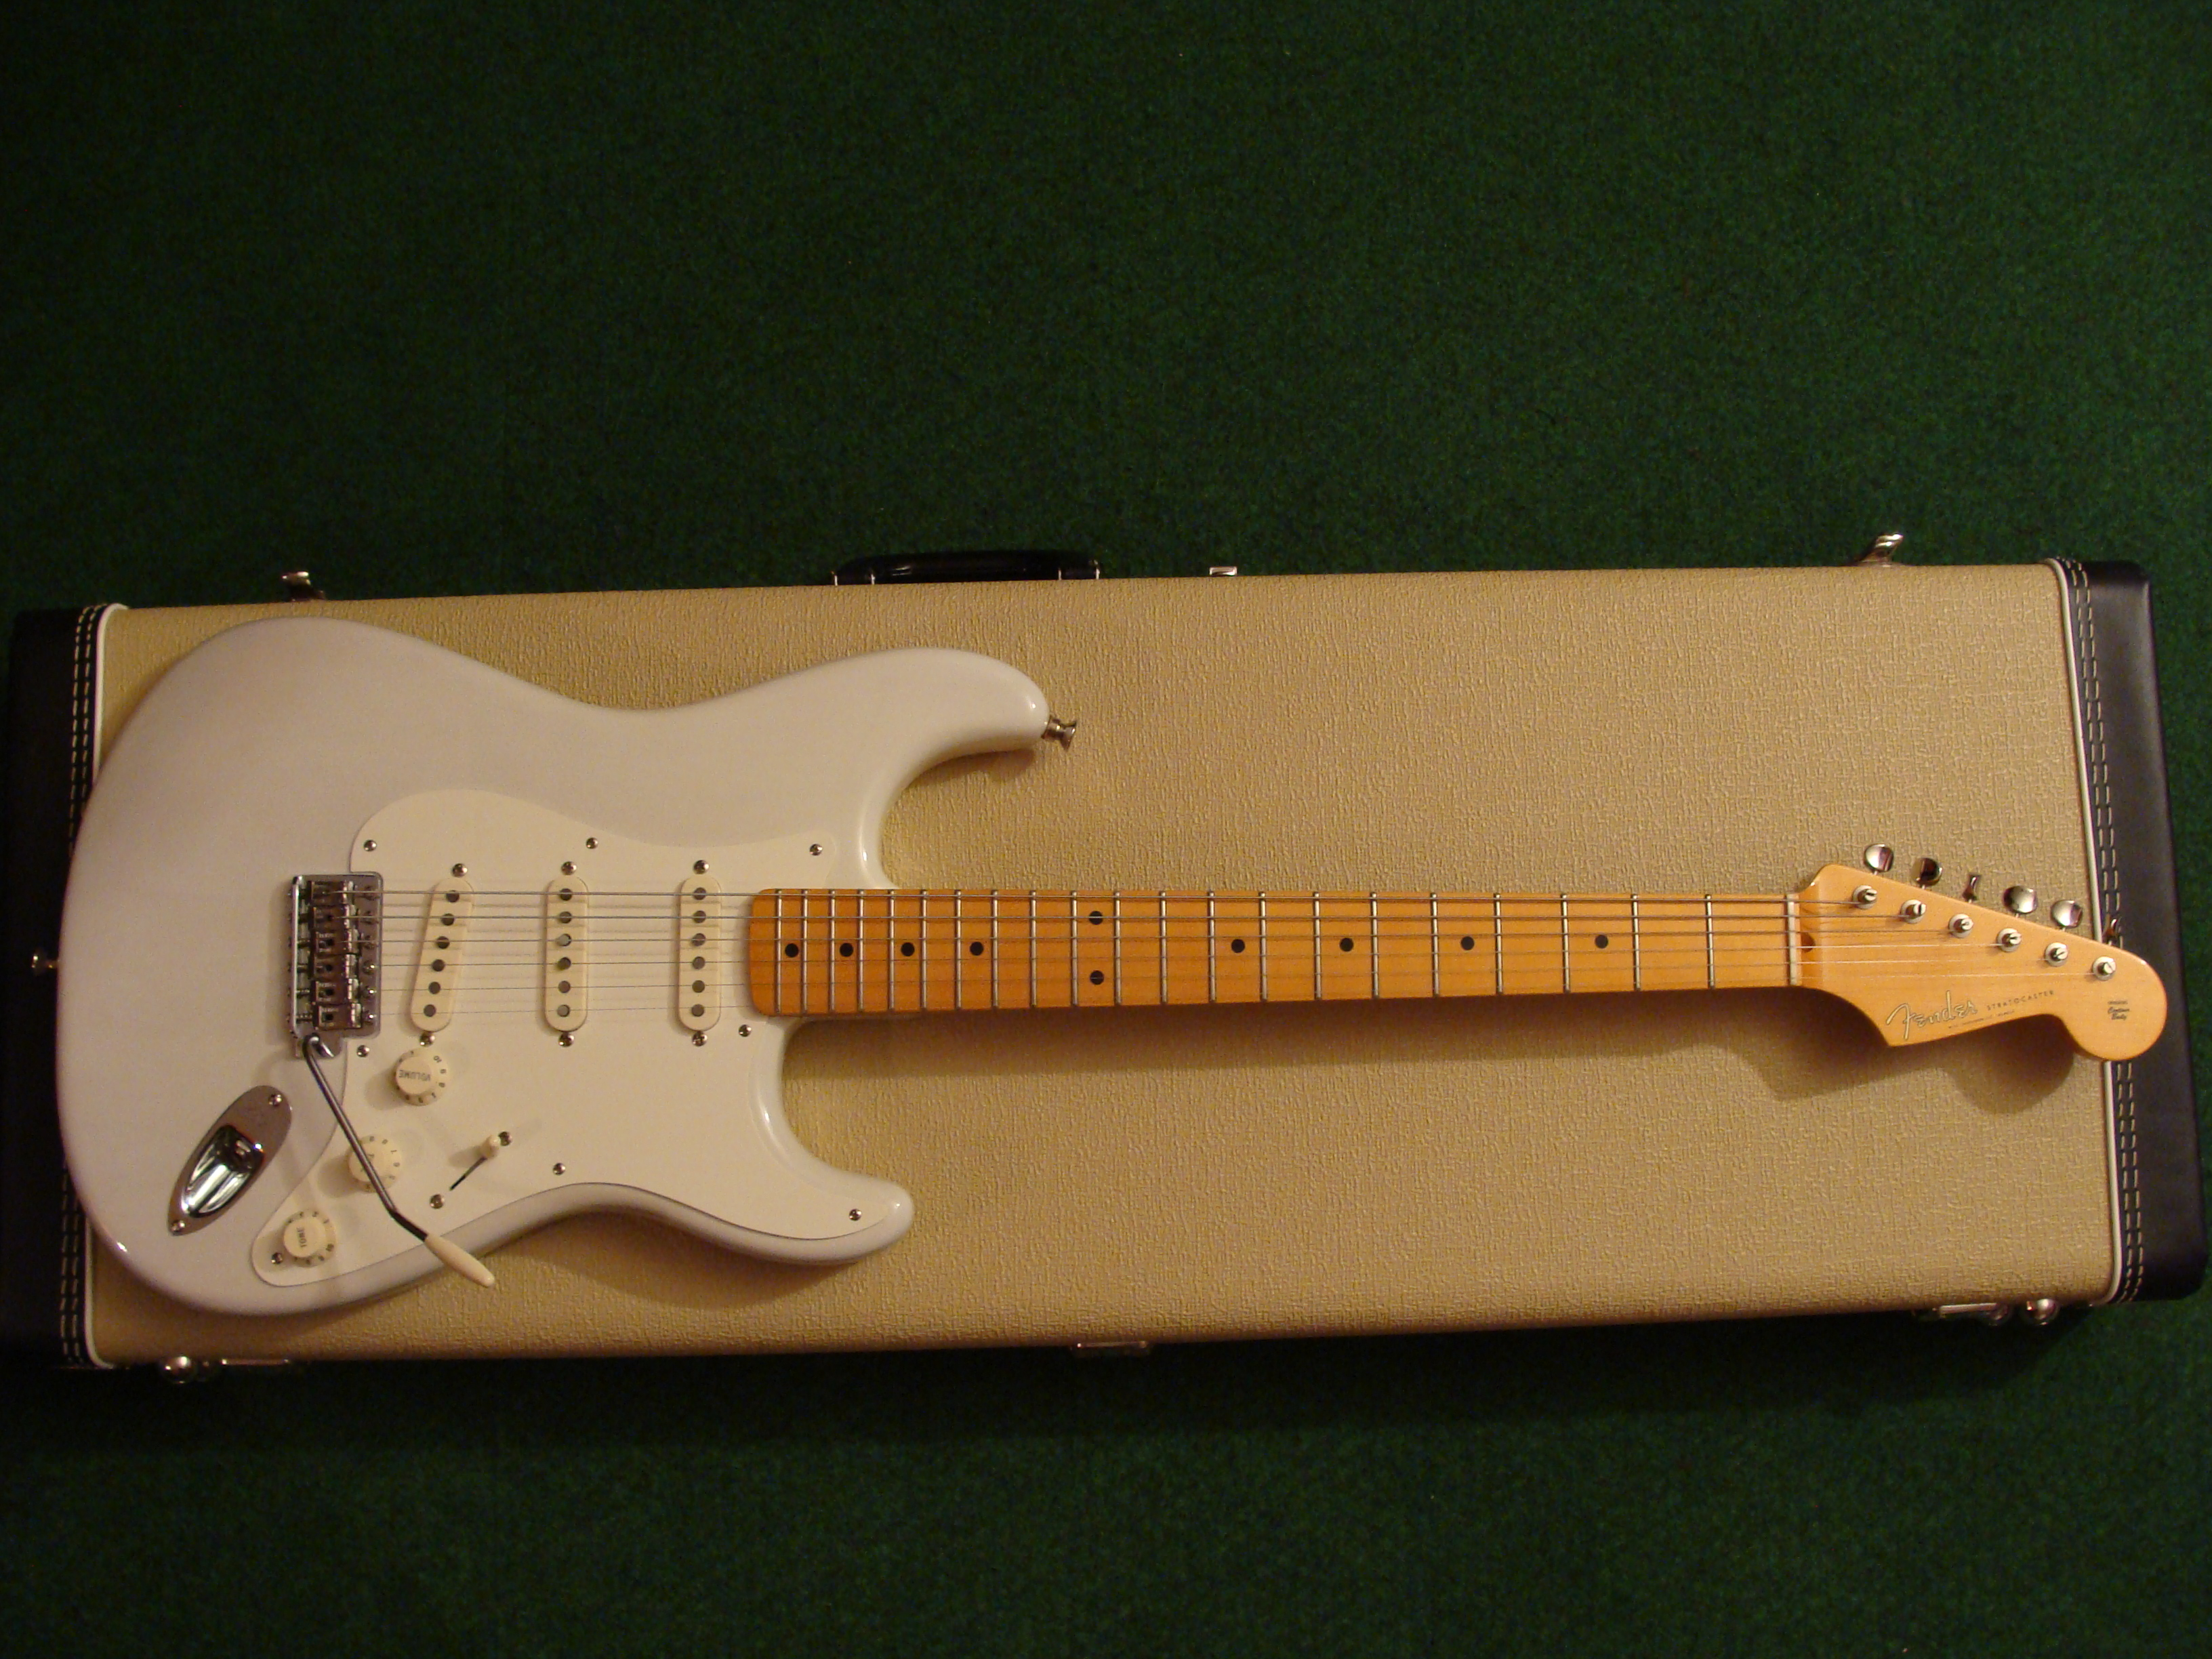 Dating american stratocaster